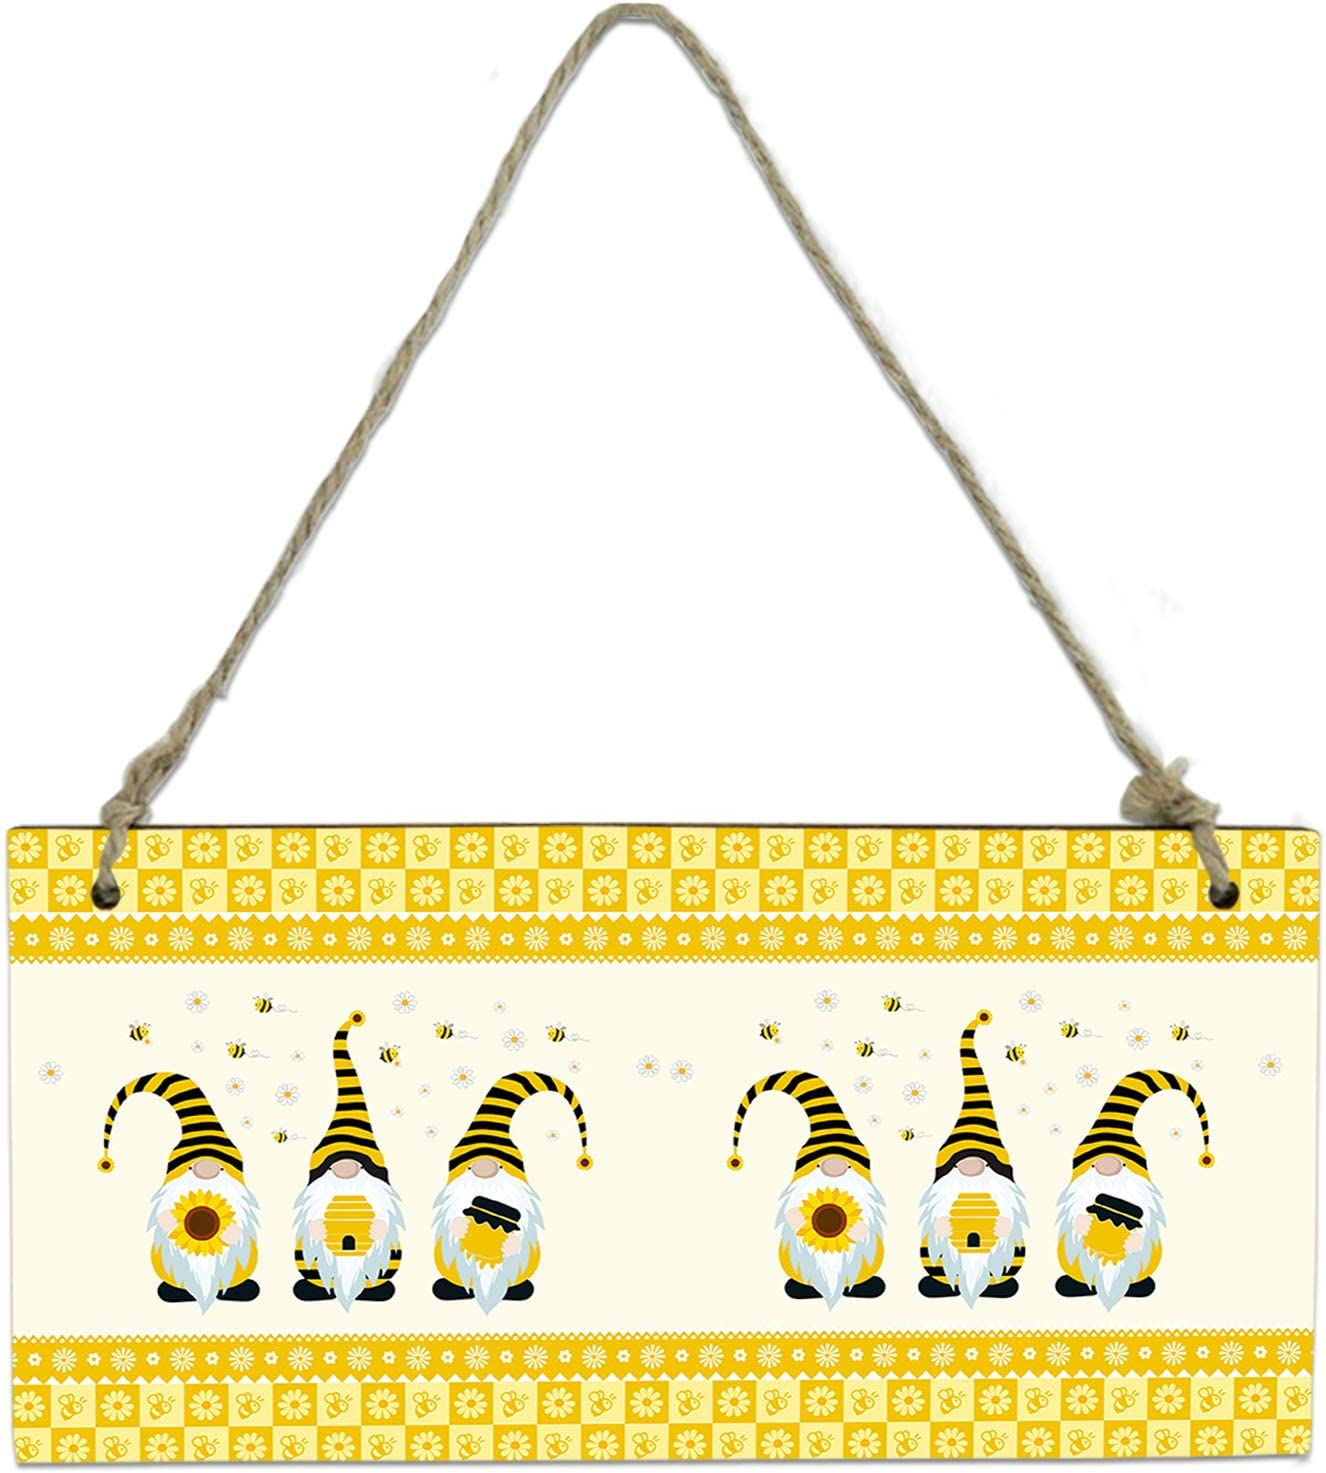 Miss Sweetheart Hanging Wall Decor Wooden Sign-Sunflower Cute Bee Gnomes Yellow Flower Border Welcome Door Sign Wood Plaque for Home Living Room Bedroom Bathroom Farmhouse Wall Decor